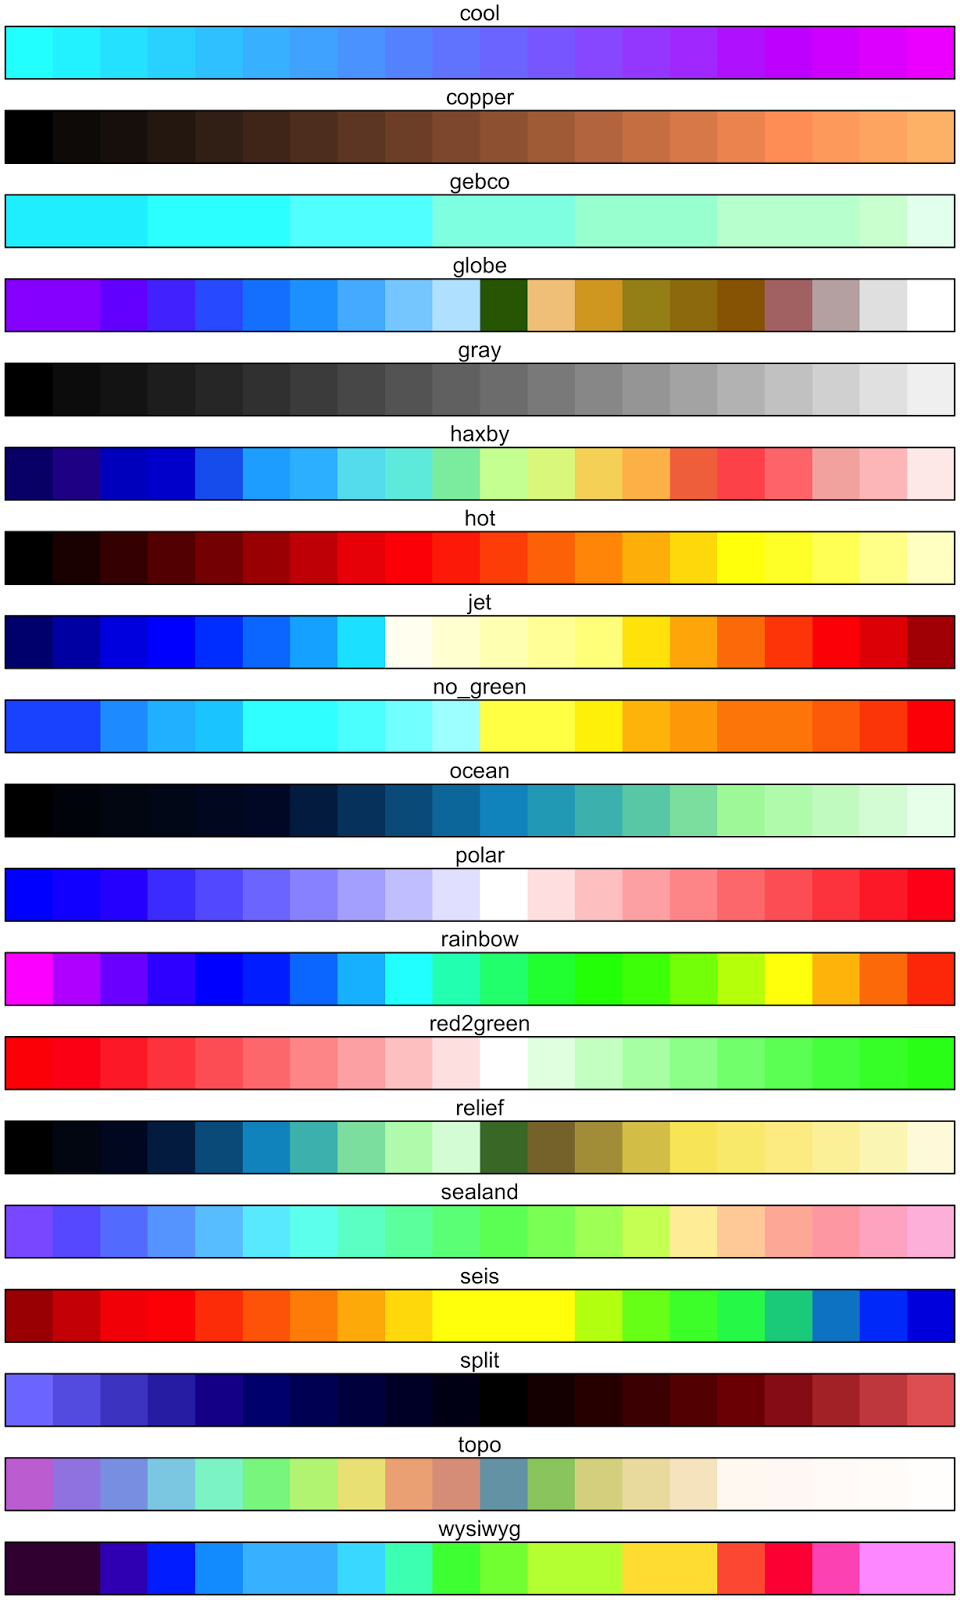 Fabulous Gmt Standard Color Palettes | R-Bloggers intended for Color Palette In R